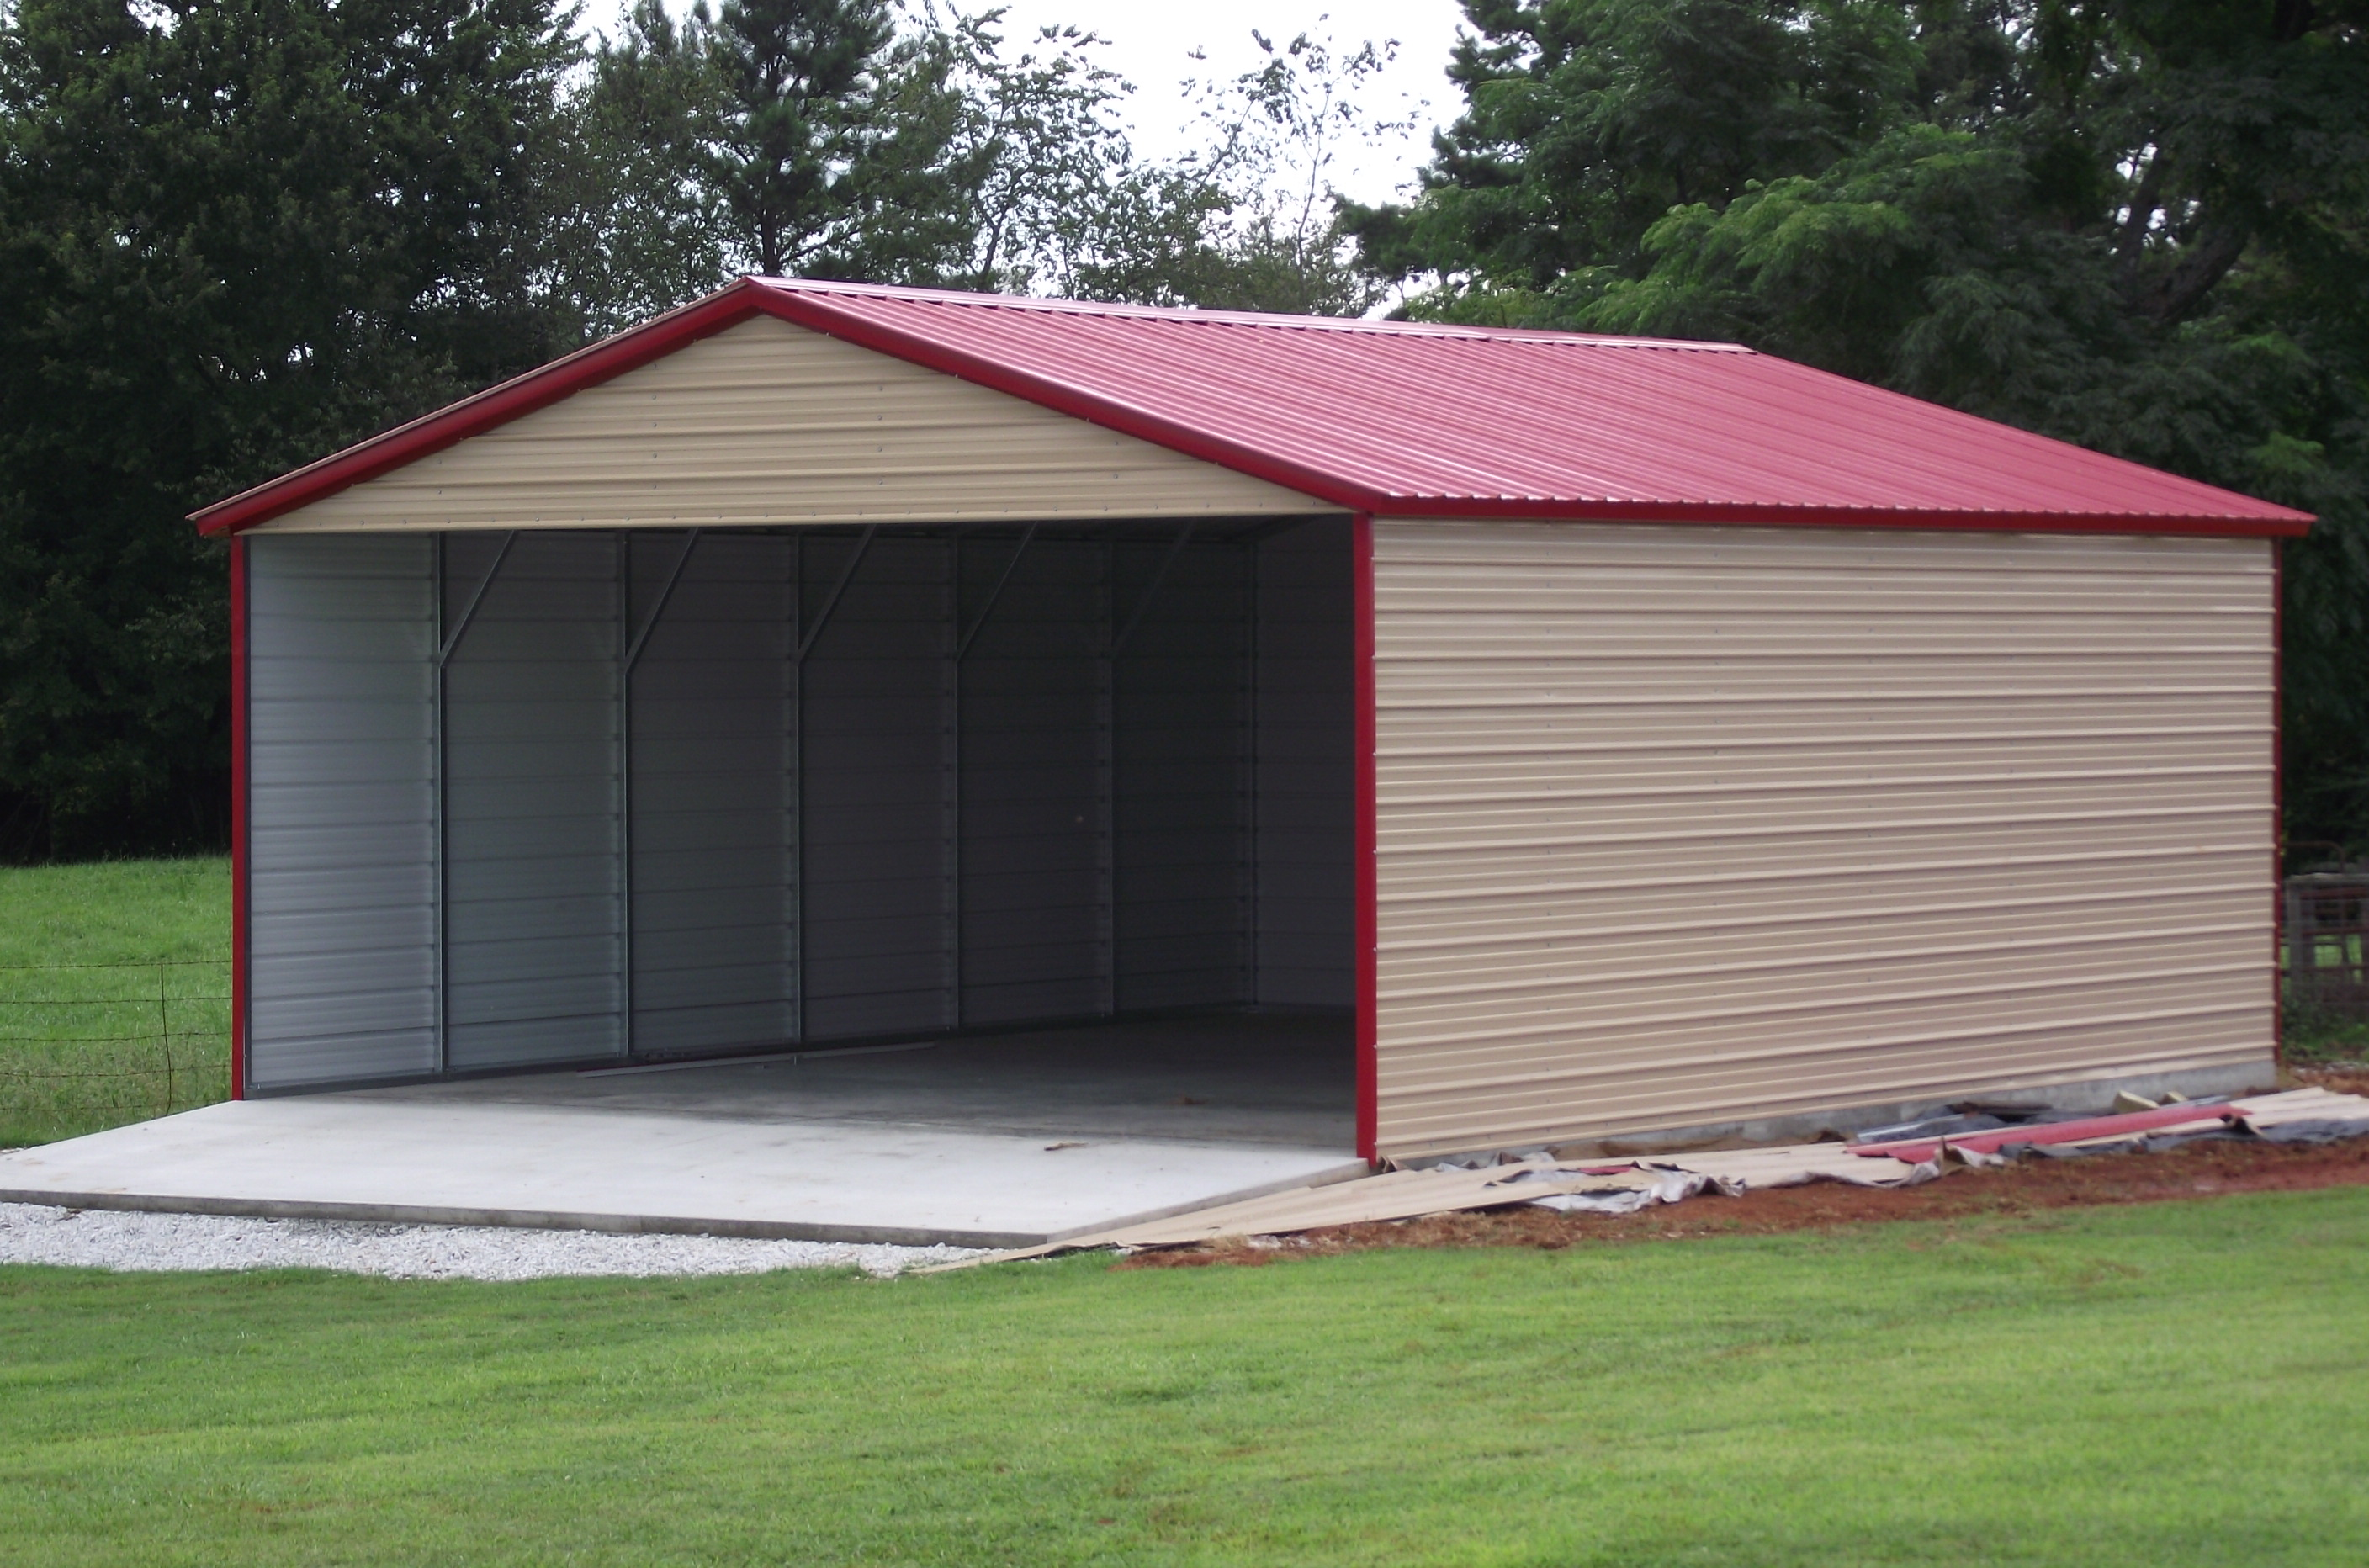 Carports arizona az metal carports arizona az for Aluminum sheds for sale